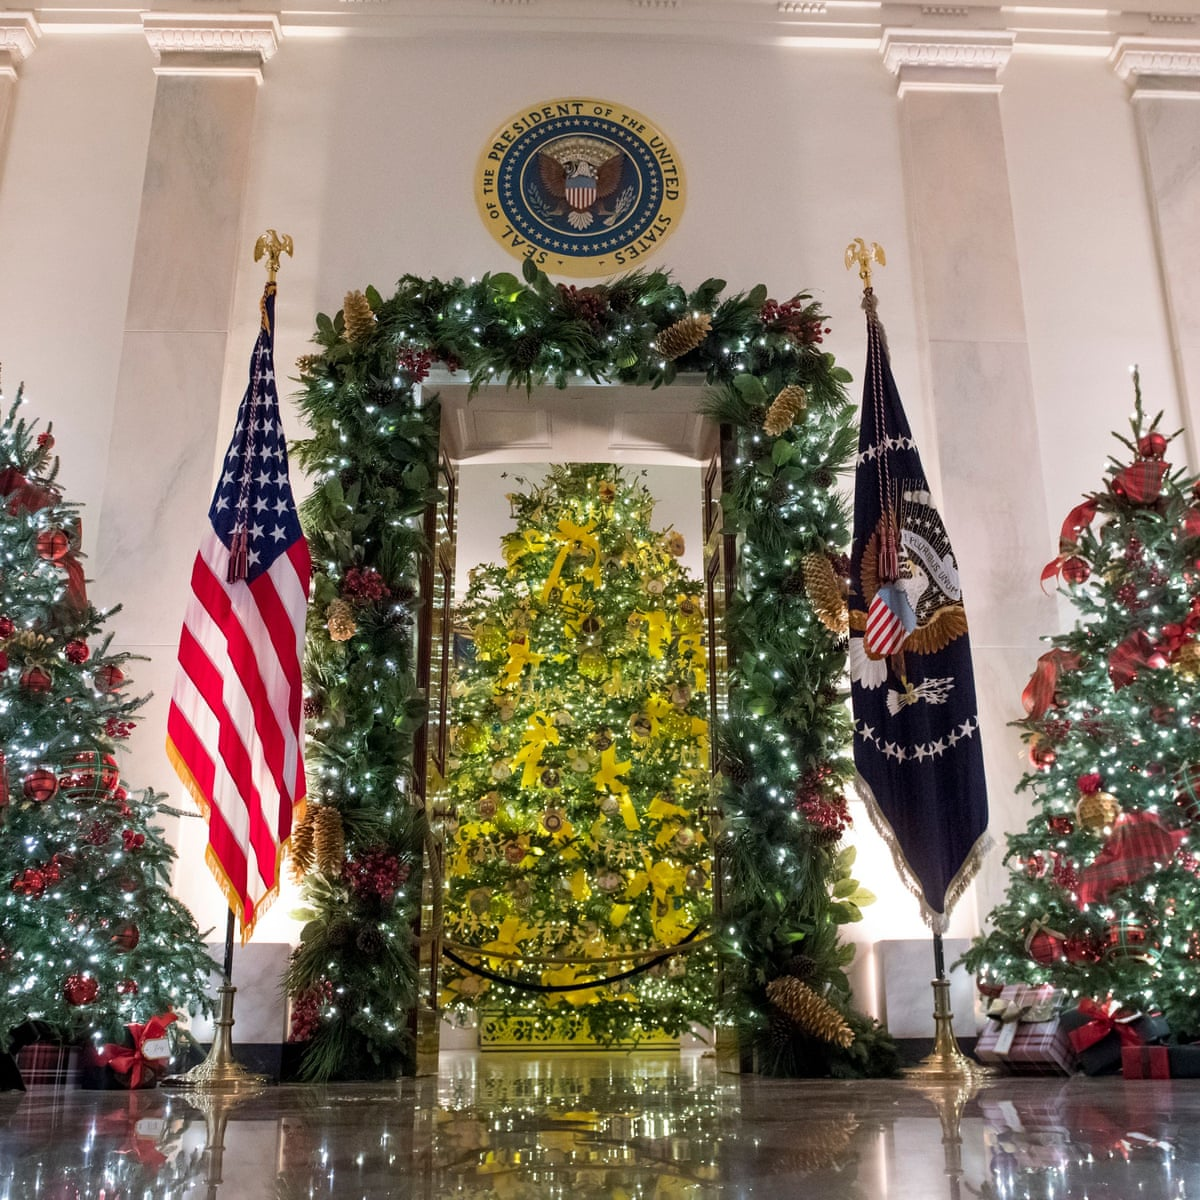 White House Different State Christmas Ornament 2021